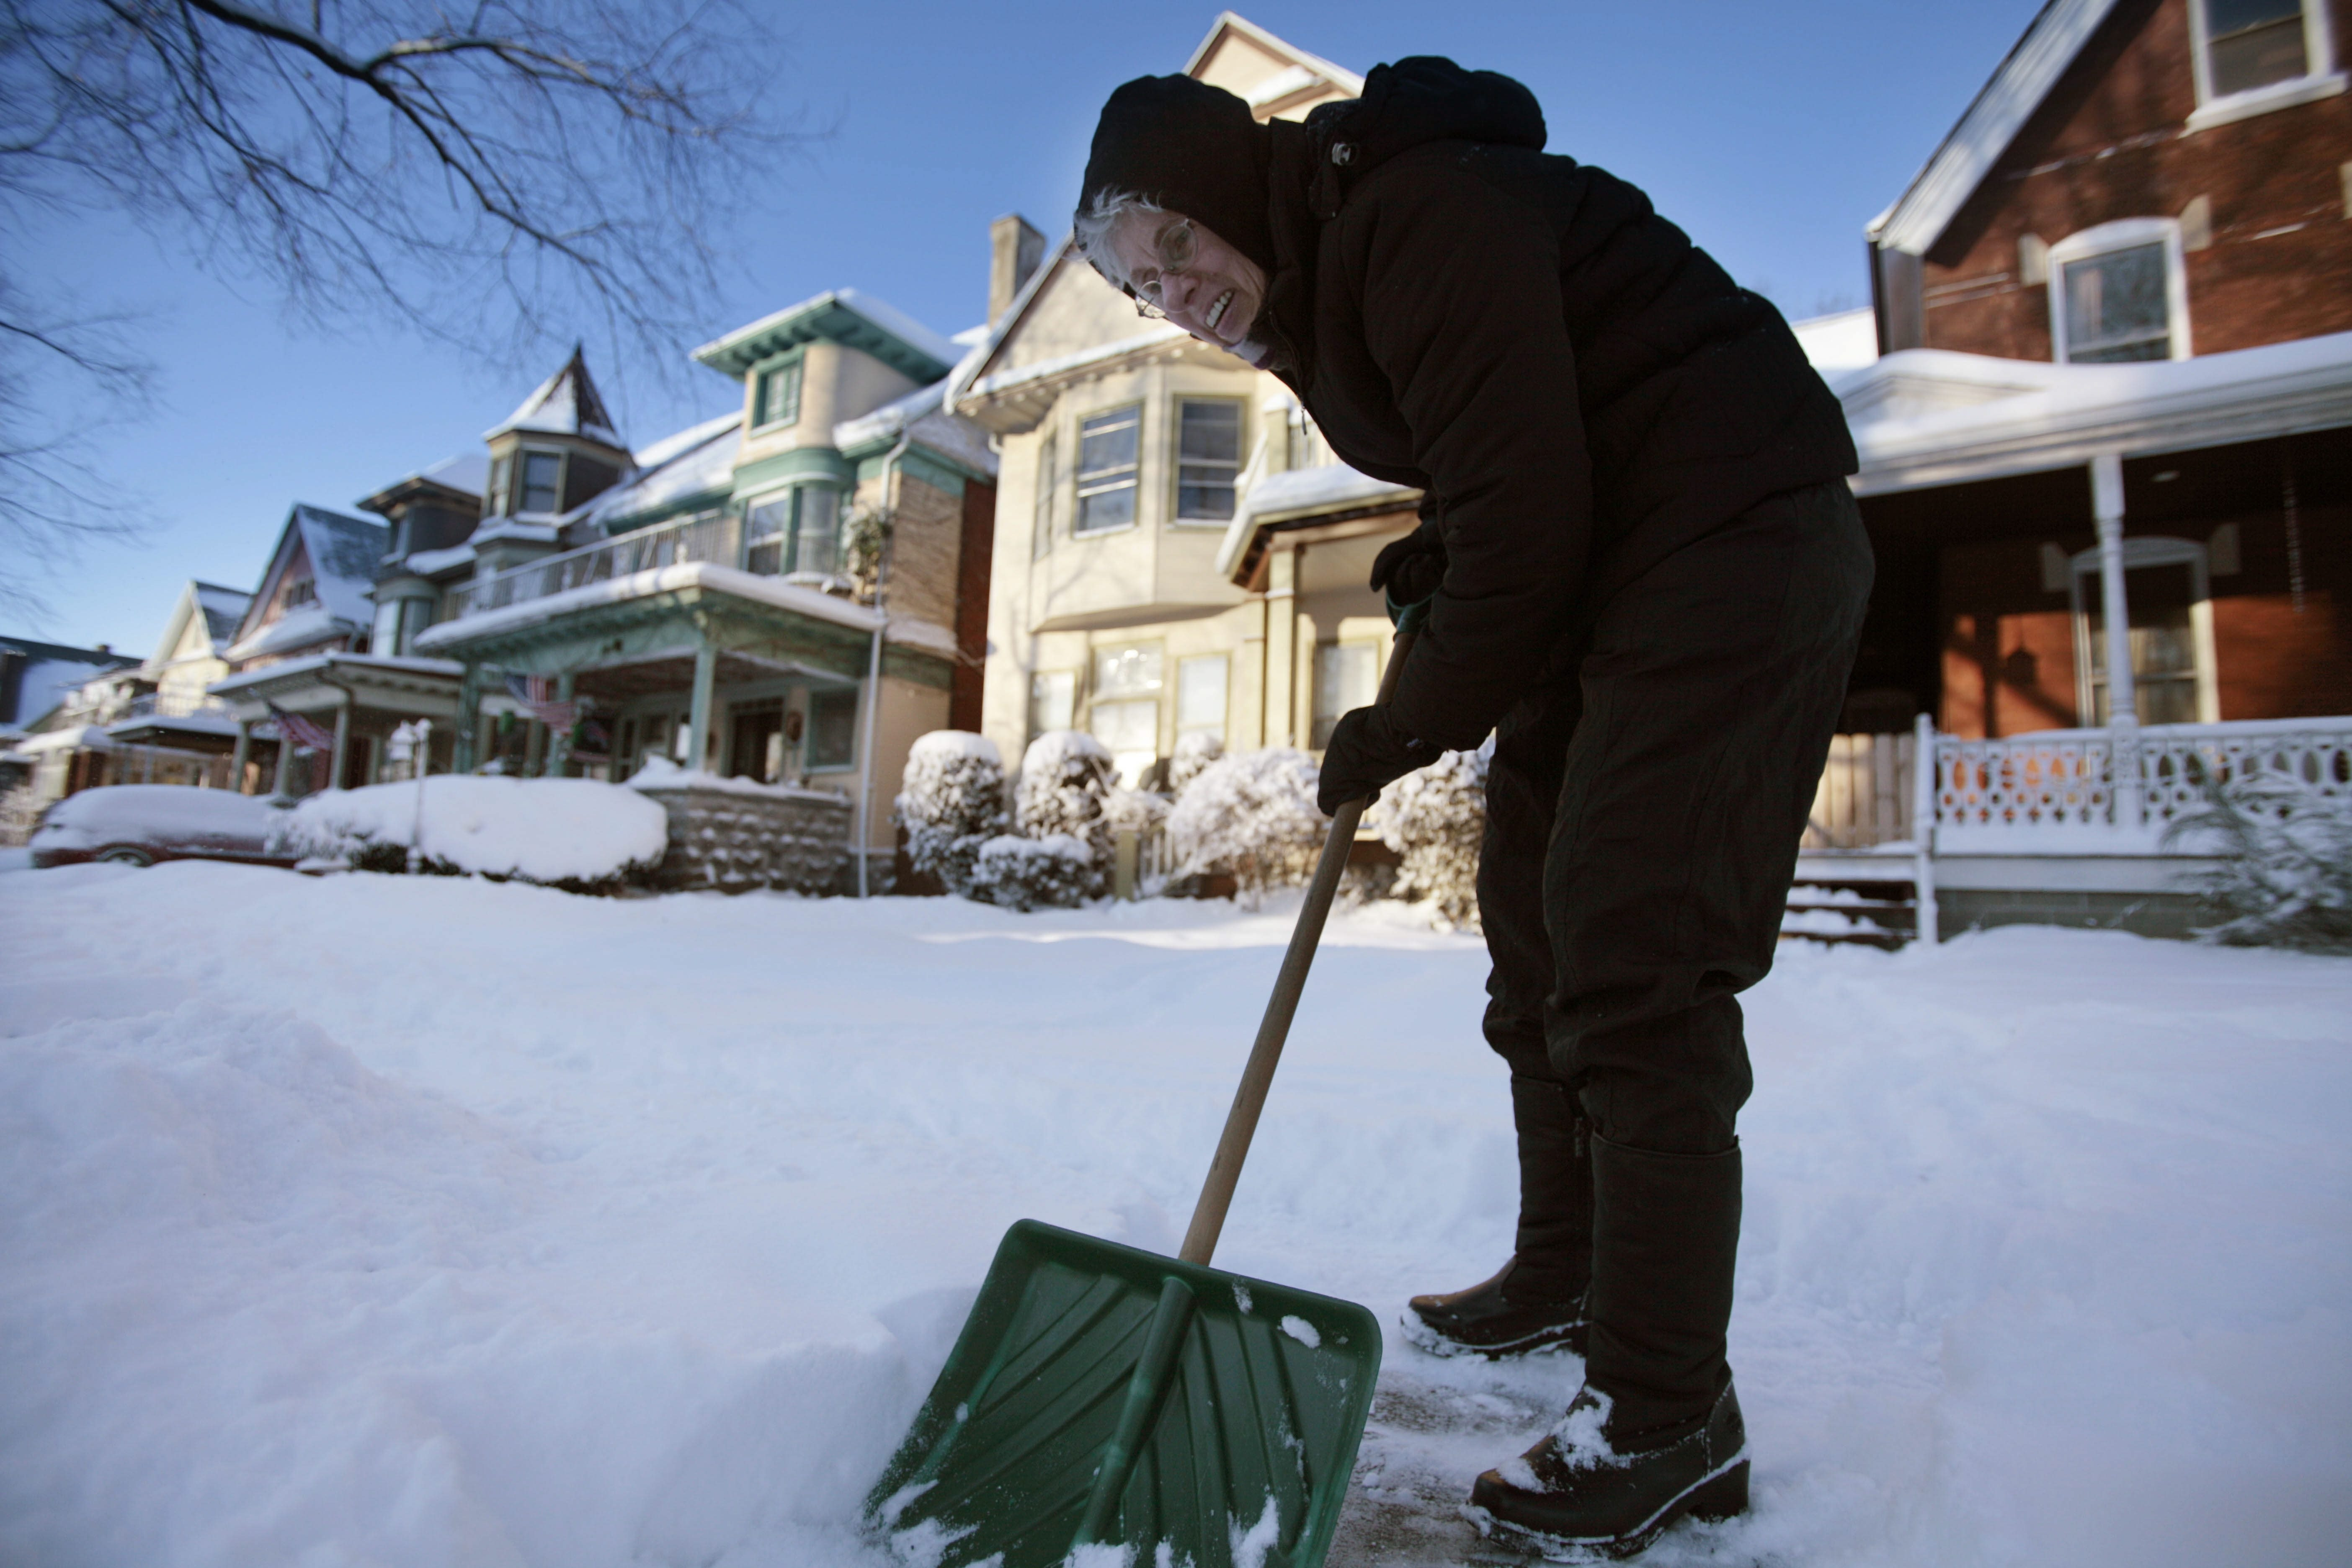 Sue Sellingsloh does some shoveling on Richmond Avenue after an overnight storm left several inches of snow.